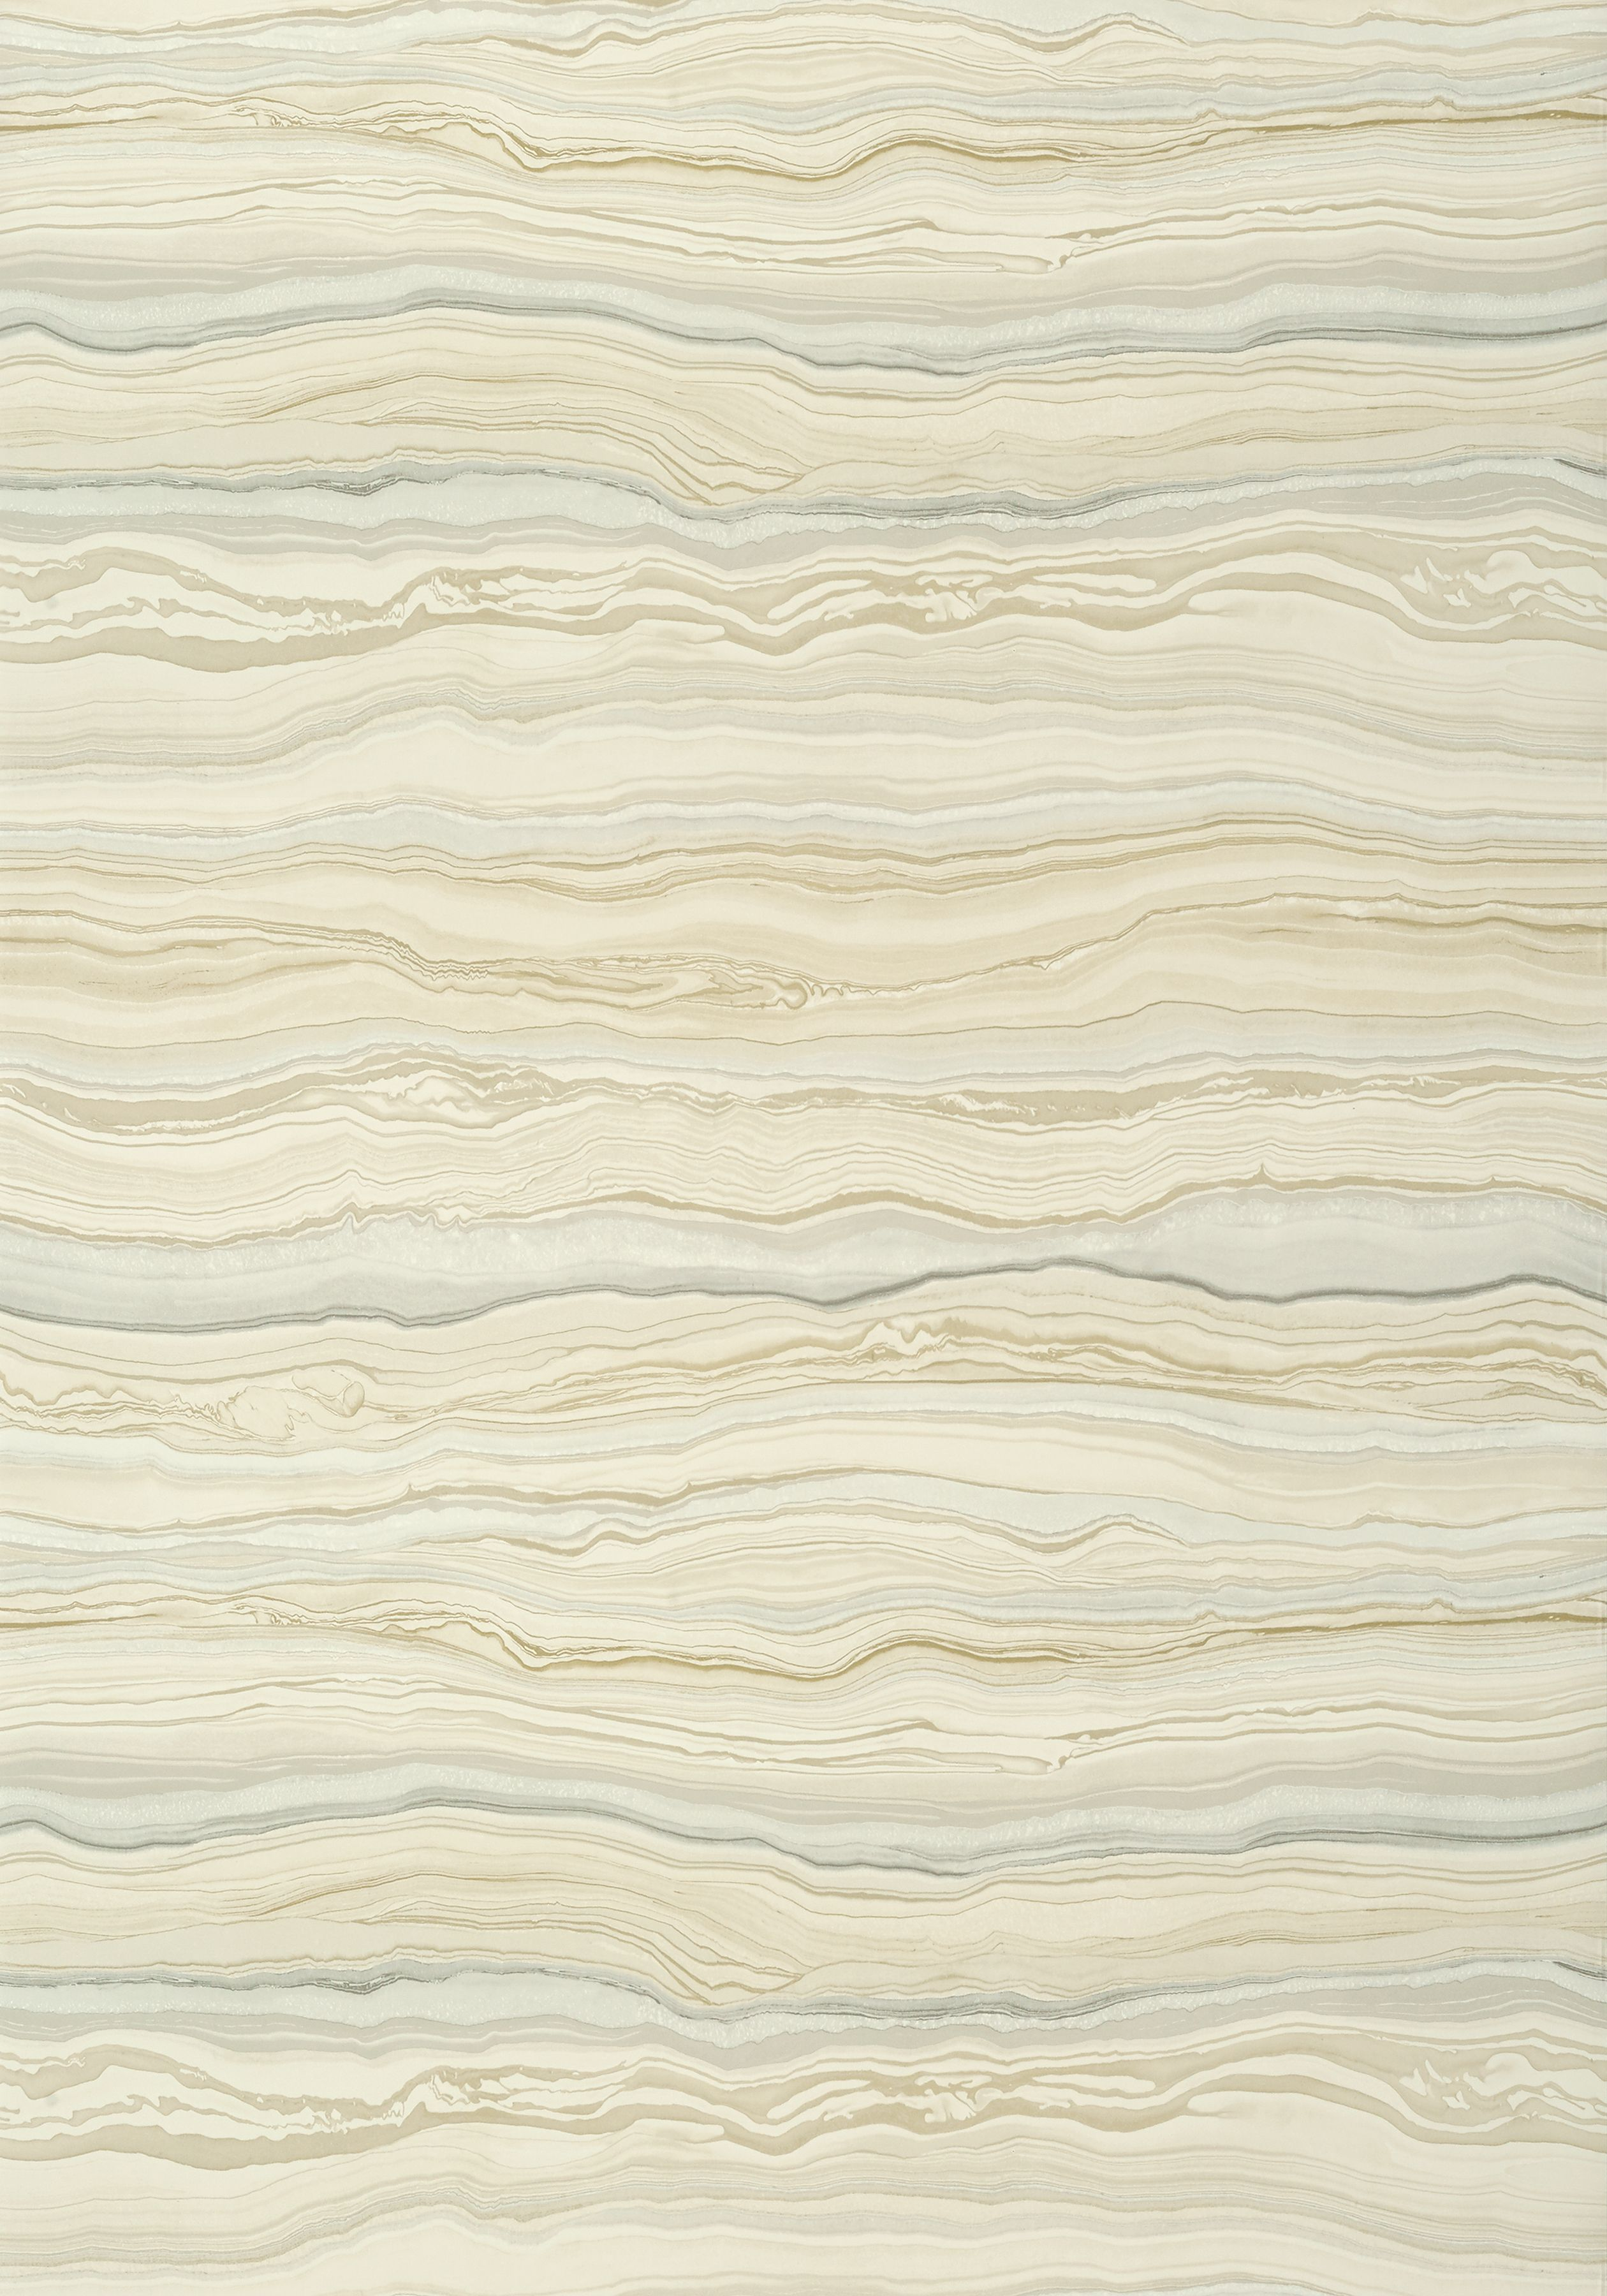 TREVISO MARBLE, Beige, T75173, Collection Faux Resource from Thibaut ...